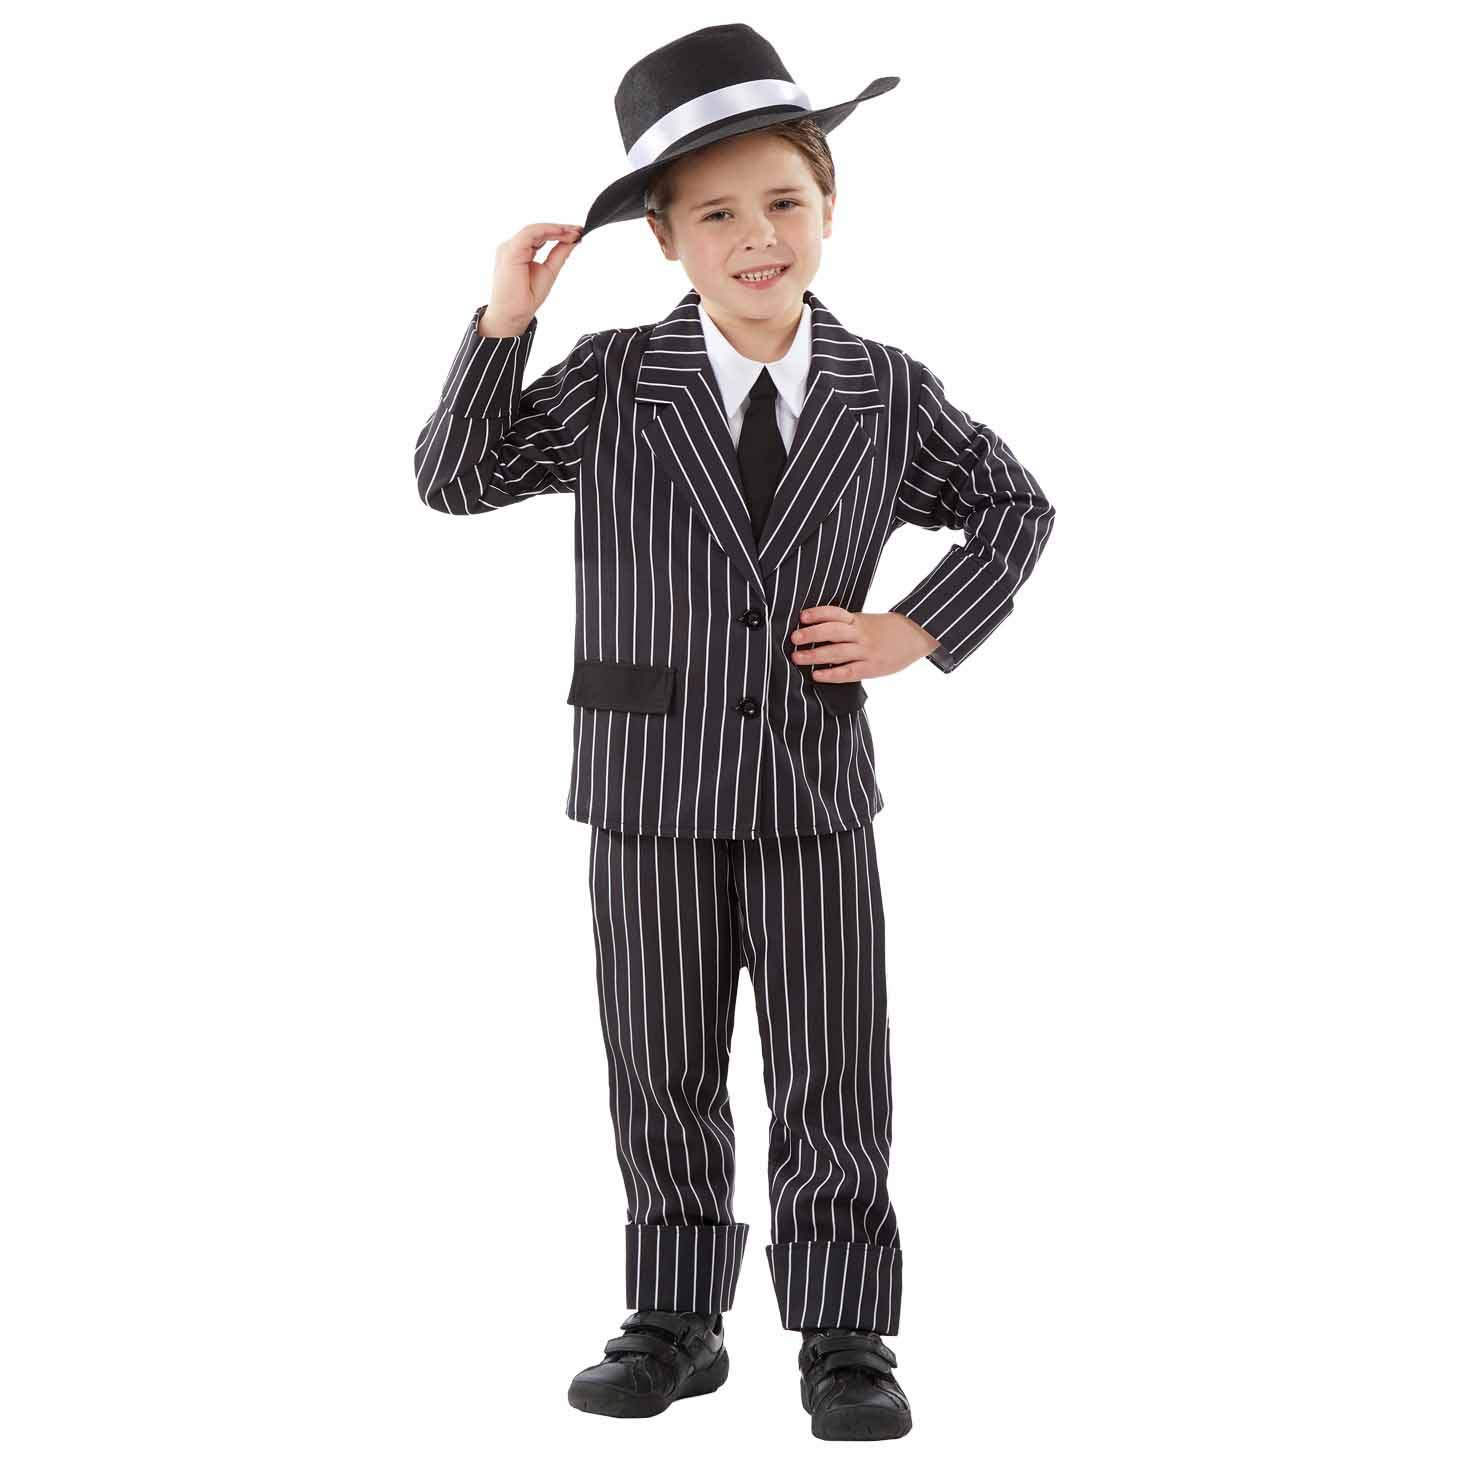 fun shack Kids Gangster Costumes Boys Mafia Black Pinstripe Suit 1920s Mobster Outfits